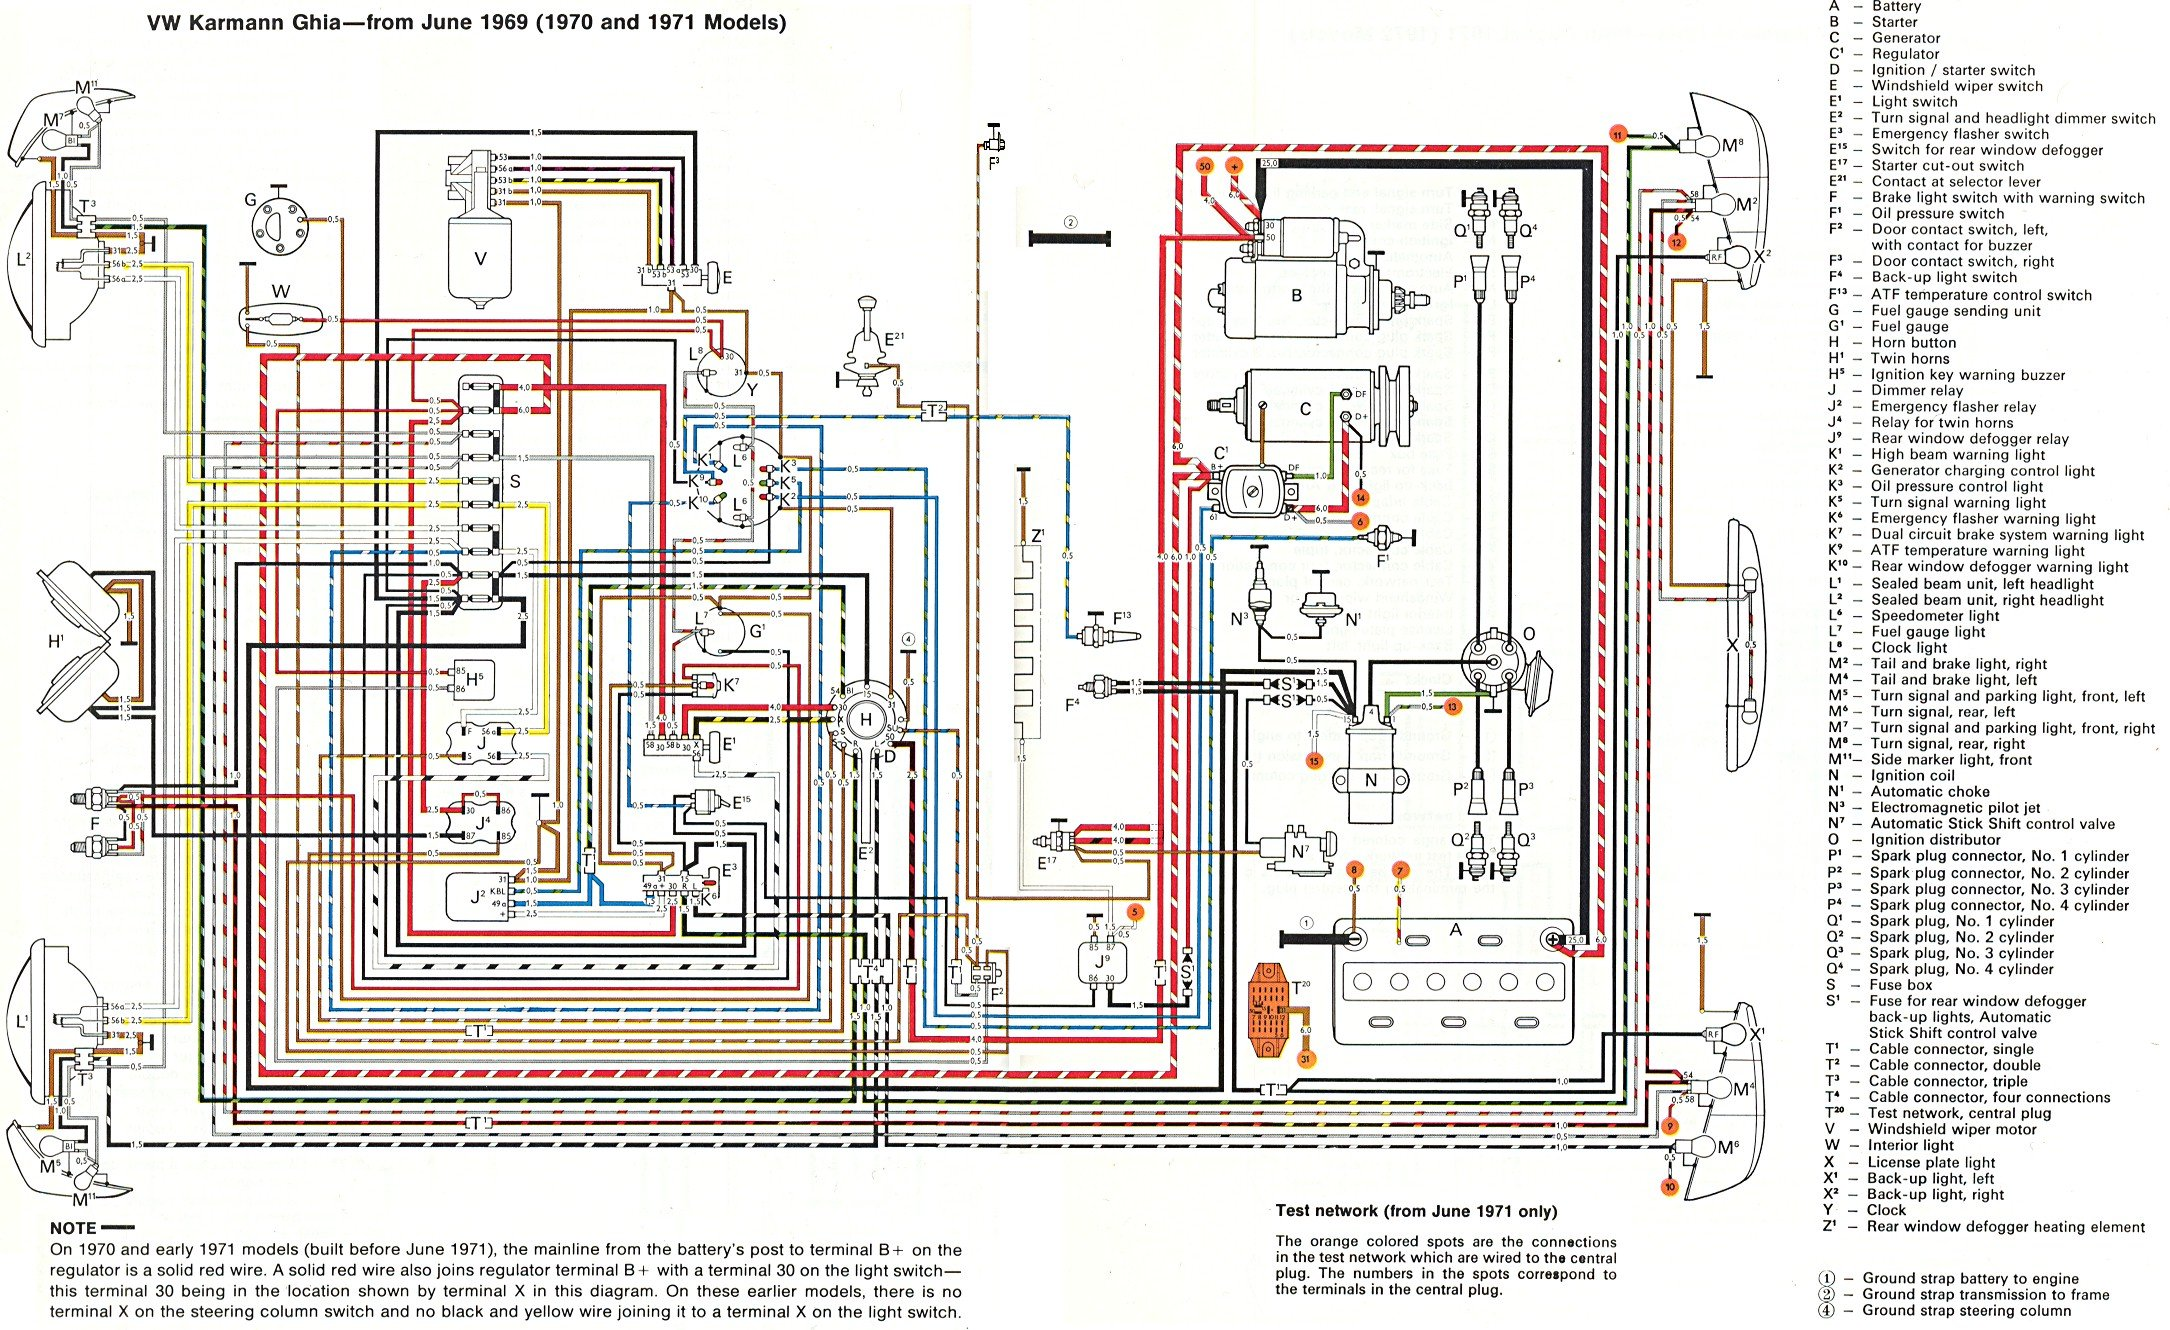 1969 camaro wiring diagram 5 10 from 44 votes 1969 camaro wiring